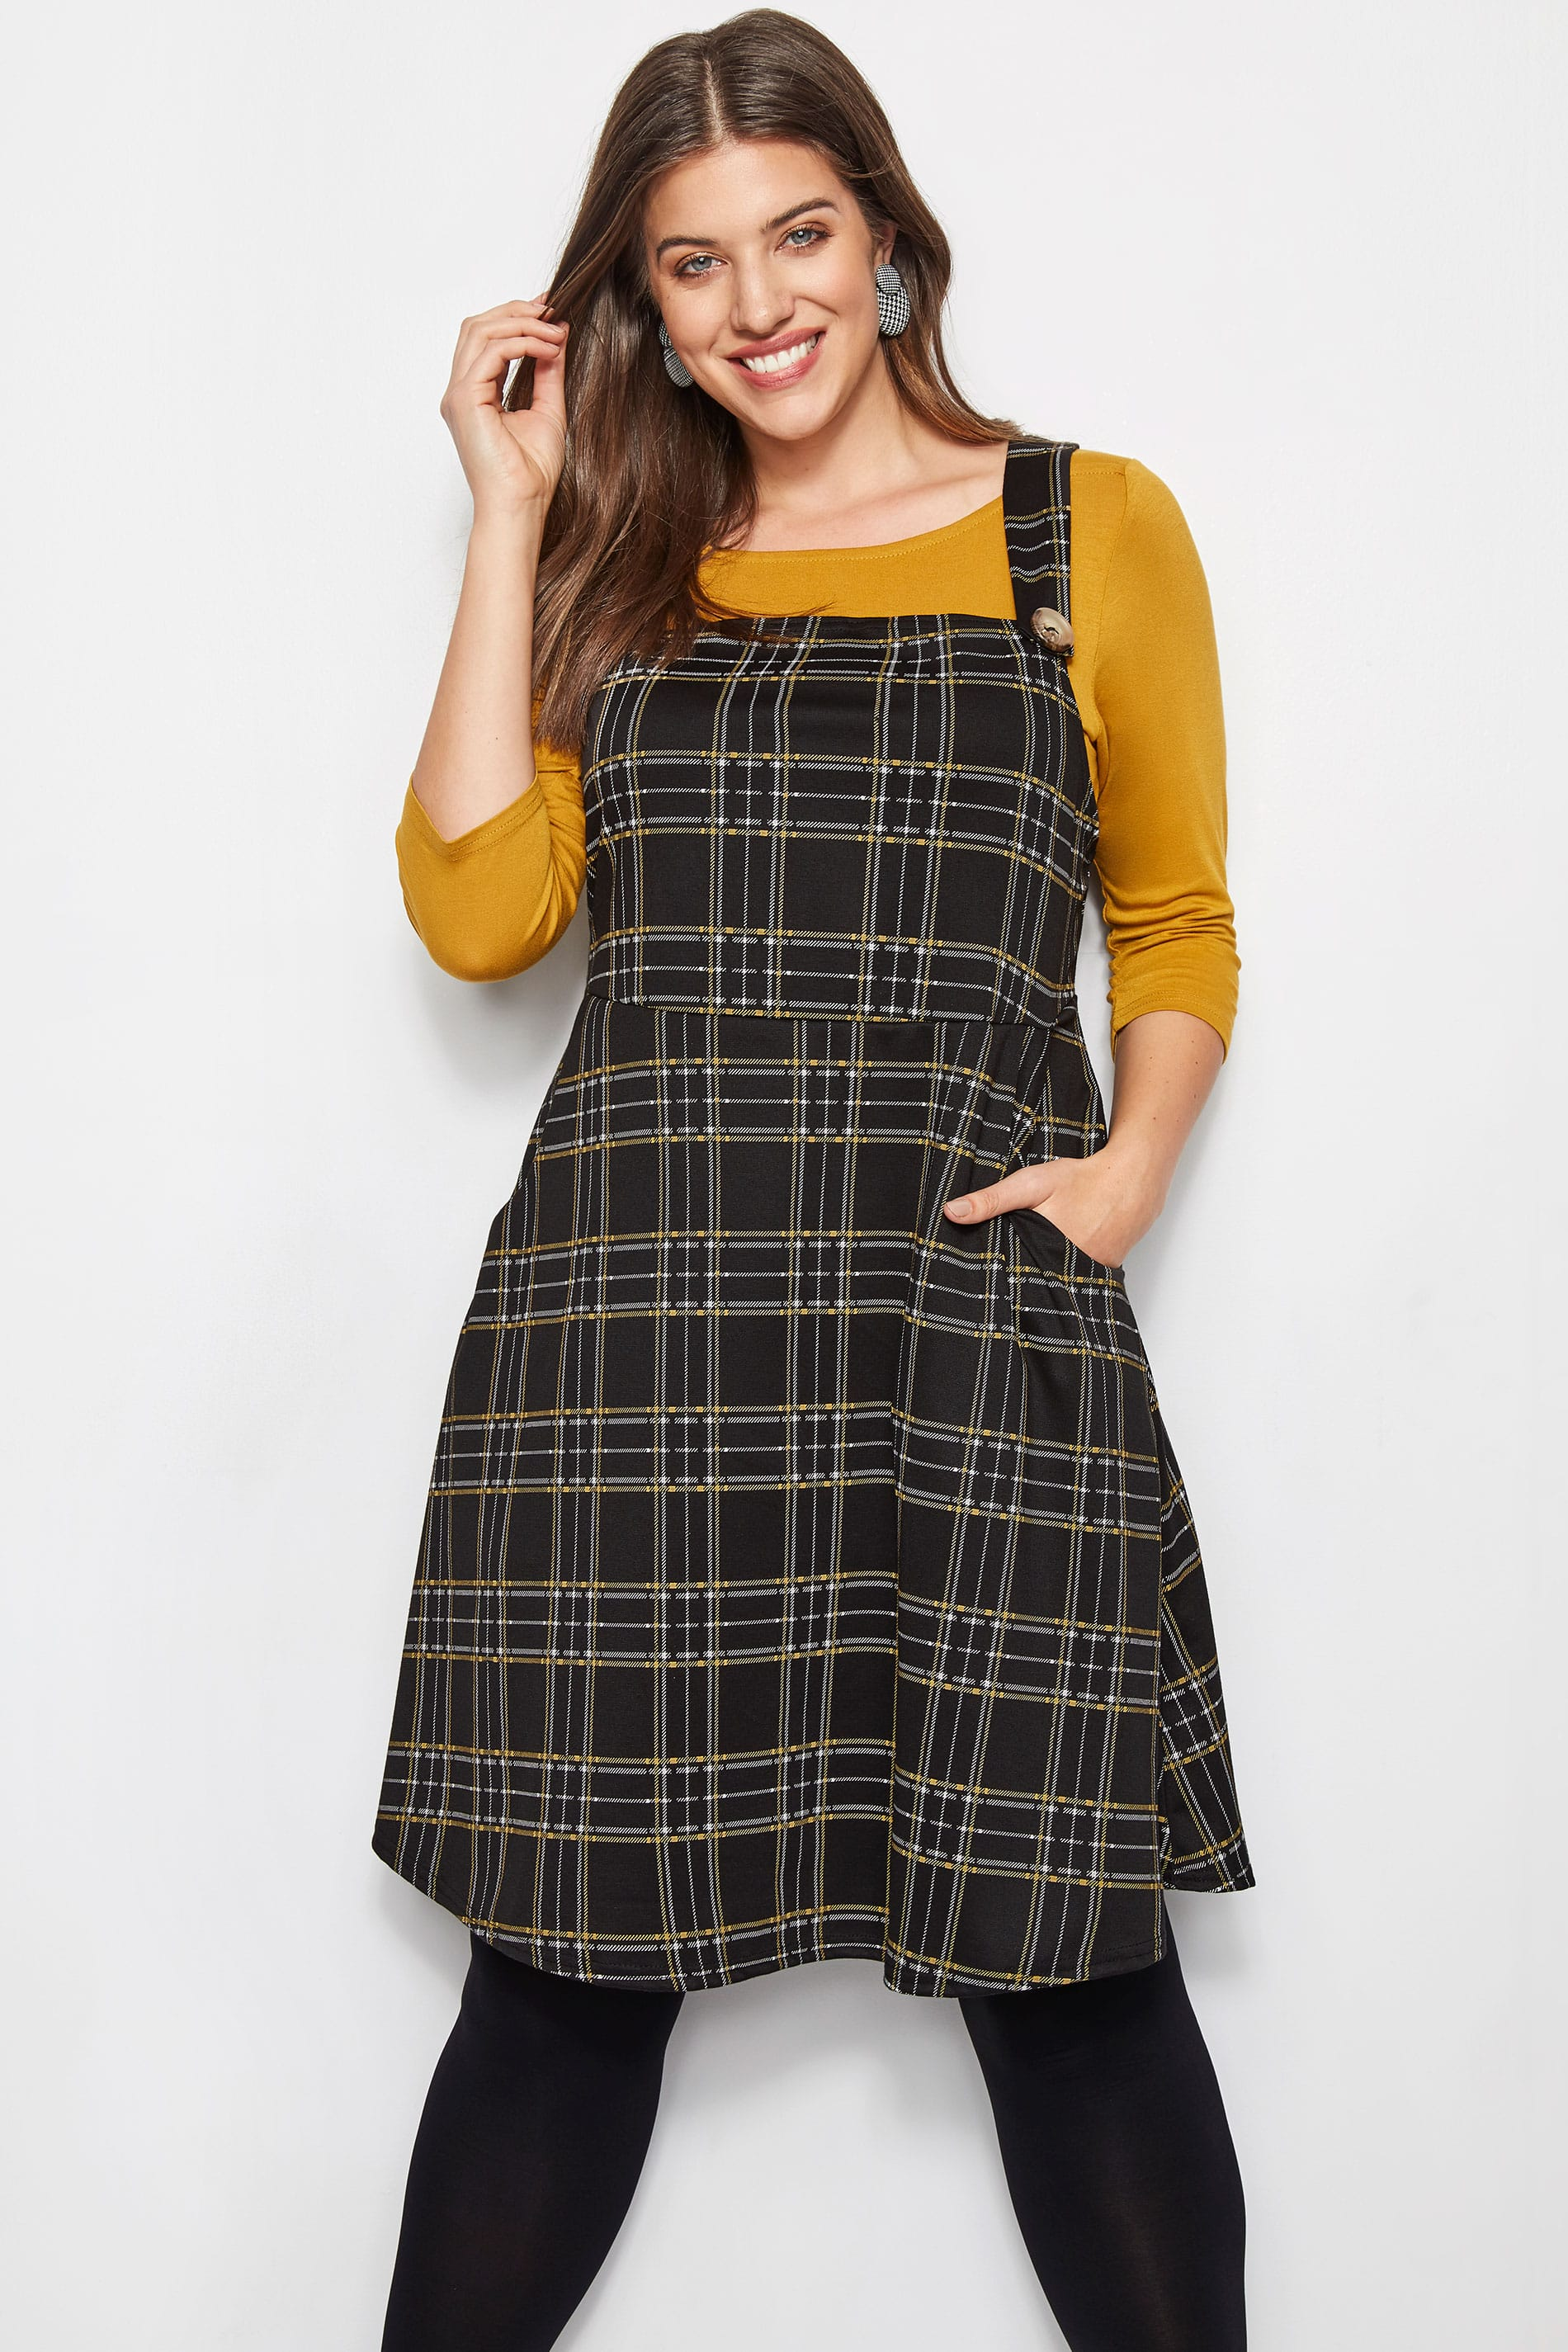 Collezione limitata Plus Size Black Yellow Check Pinafore-2046